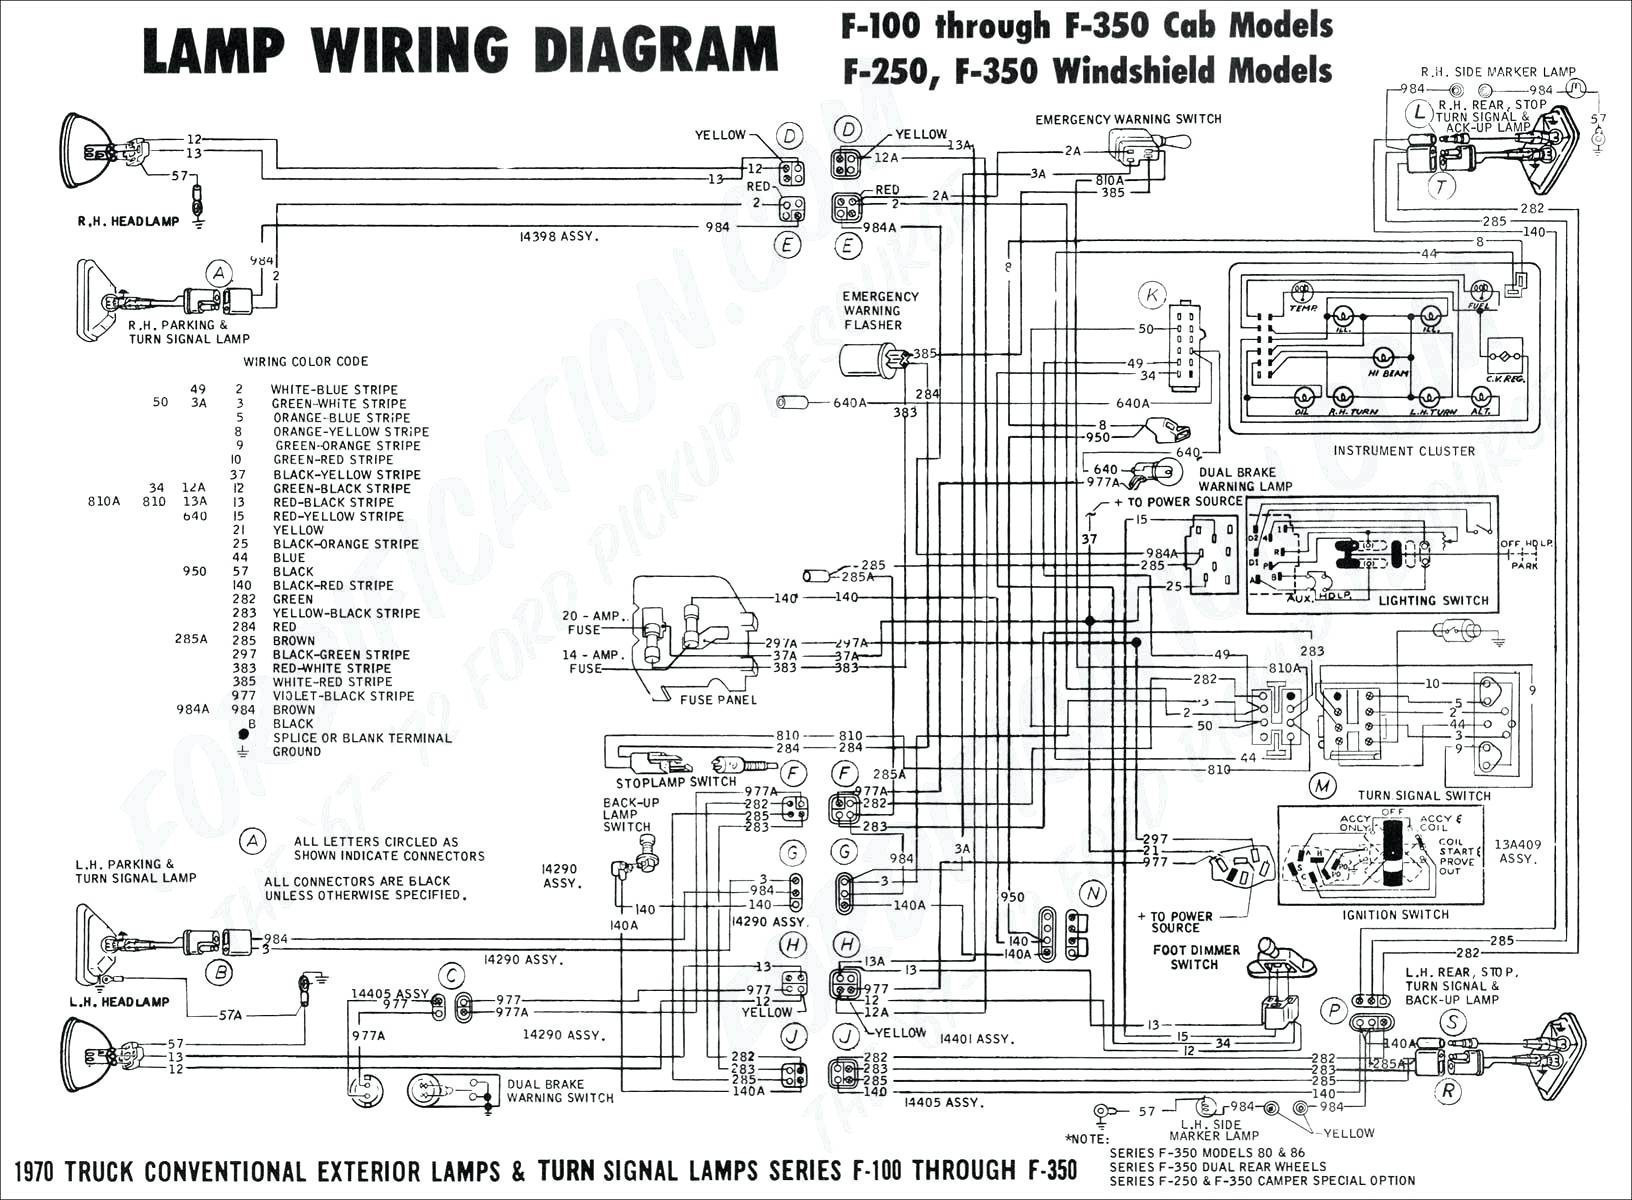 2006 Dodge Dakota Trailer Wiring Diagram Simplified Shapes 2003 - 2006 Dodge Dakota Trailer Wiring Diagram